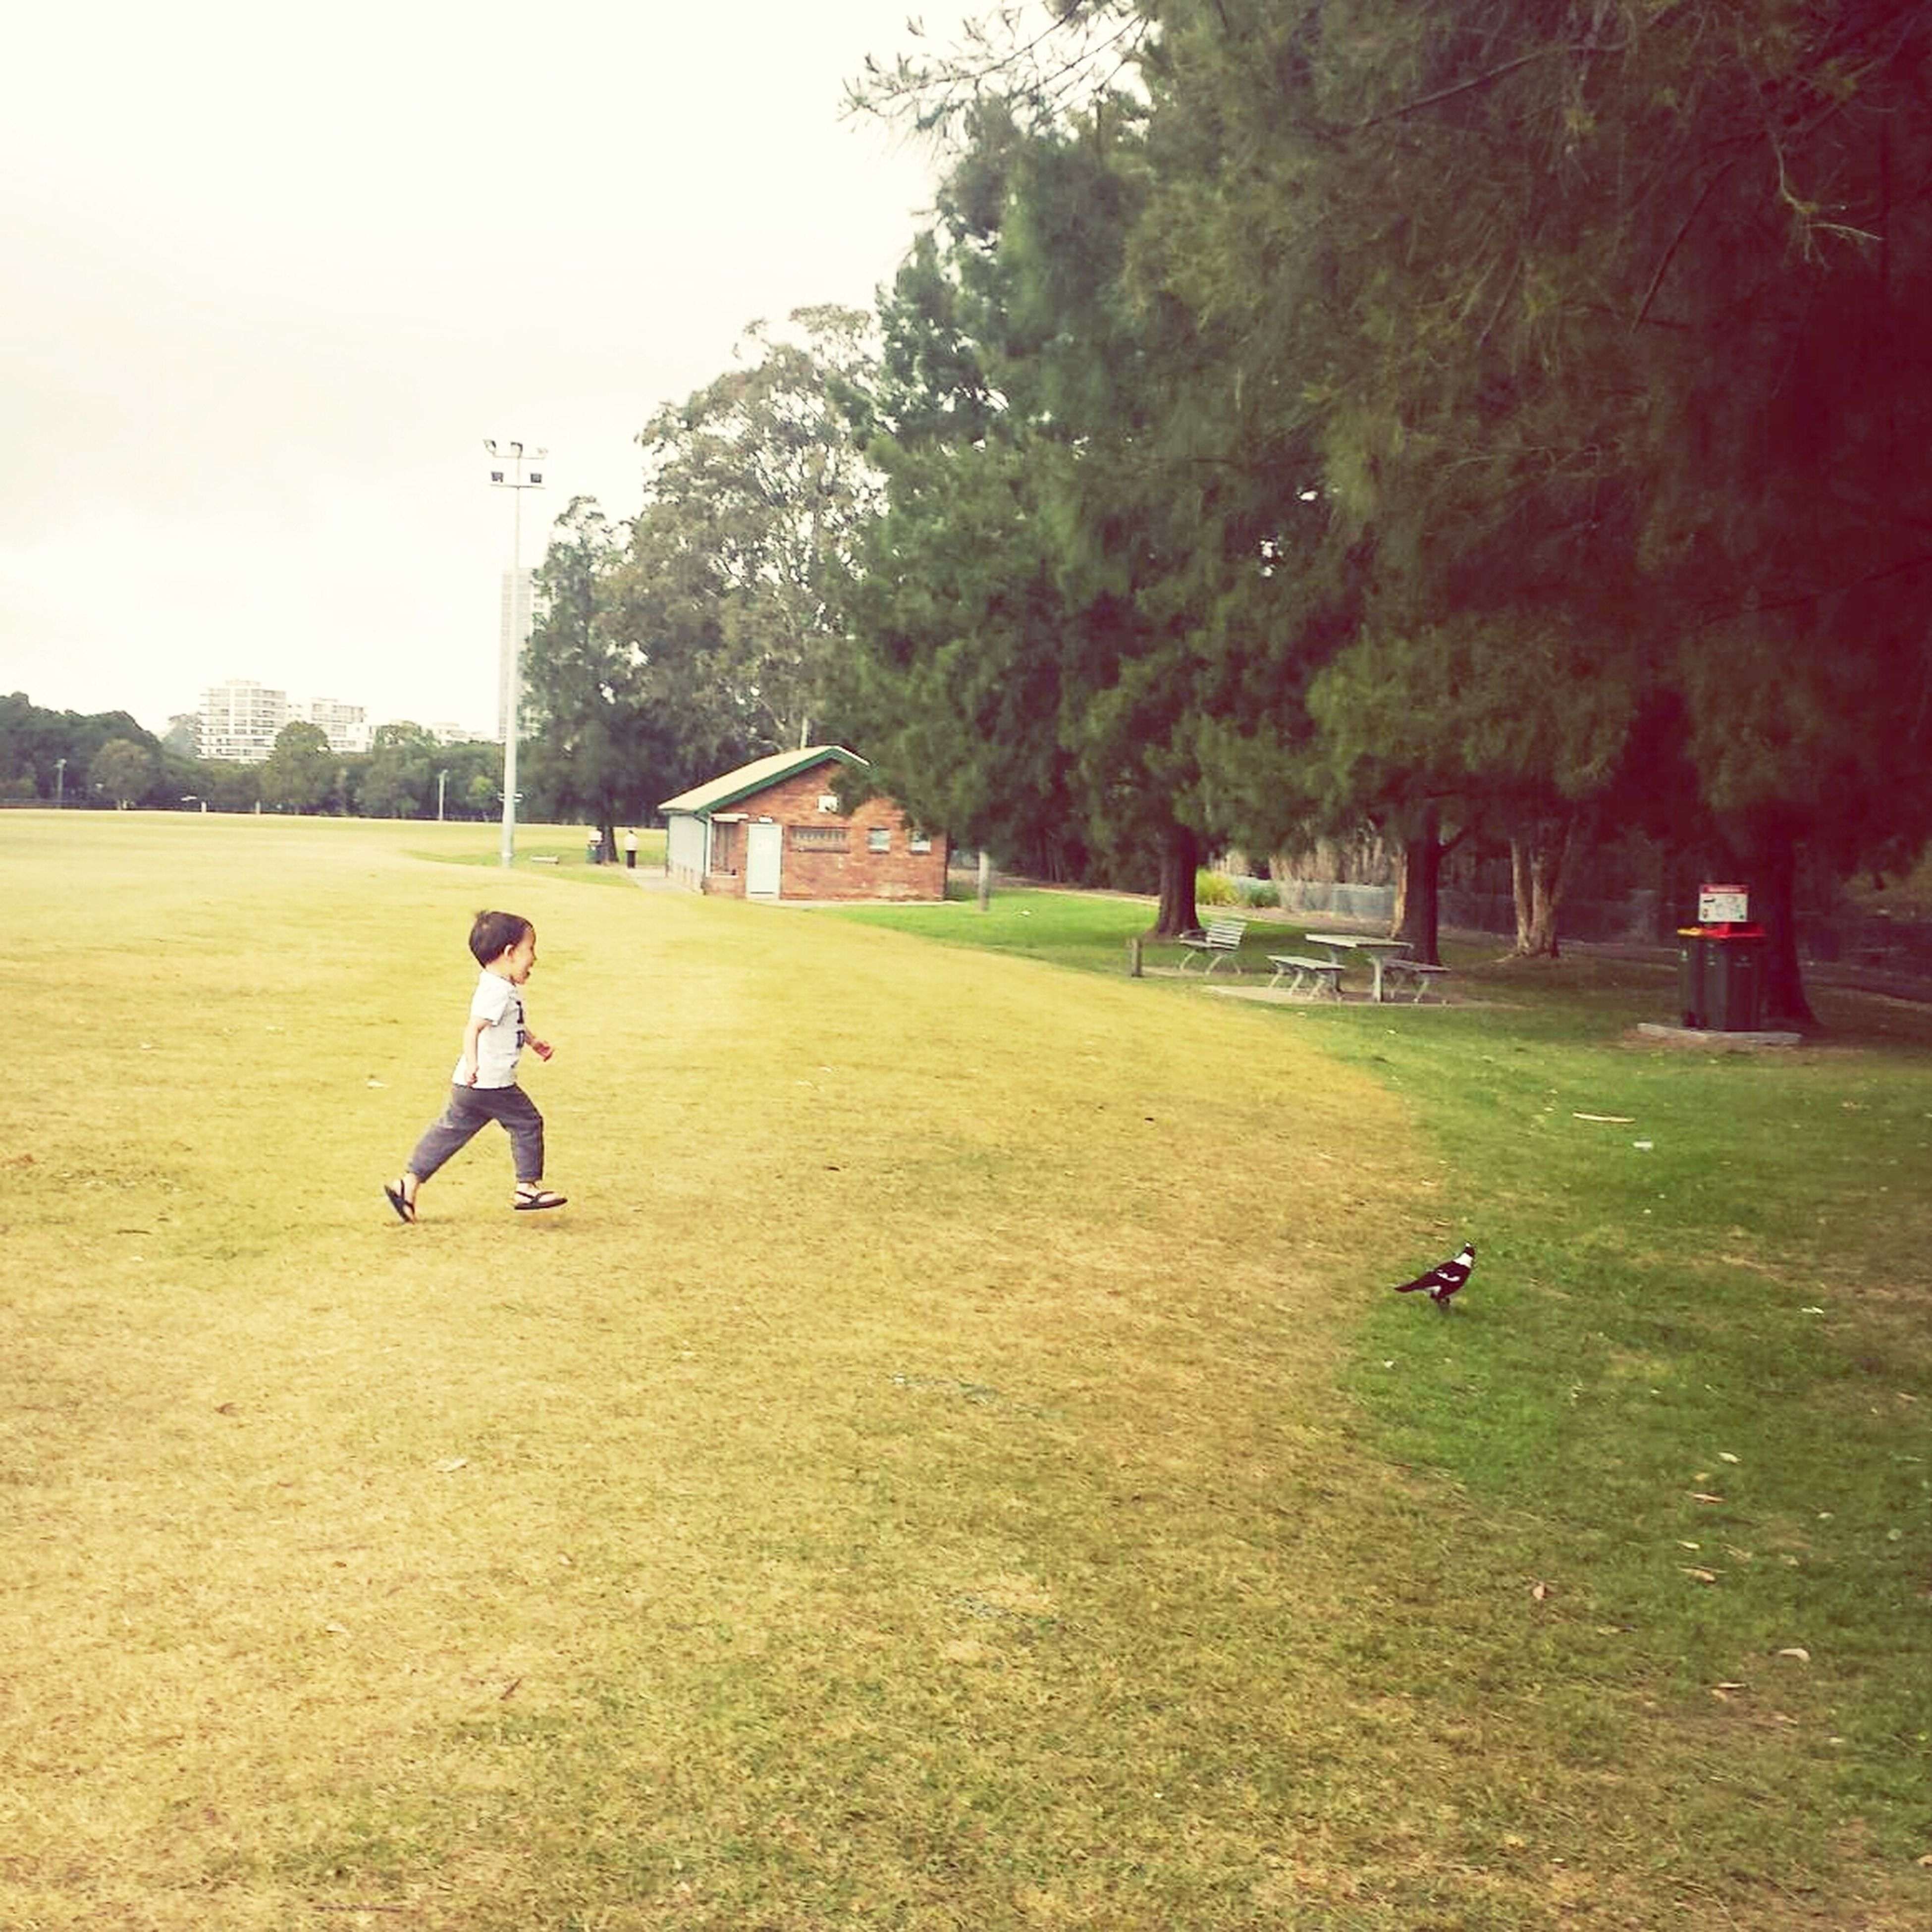 full length, lifestyles, leisure activity, tree, grass, childhood, men, casual clothing, boys, walking, park - man made space, person, girls, field, elementary age, playing, green color